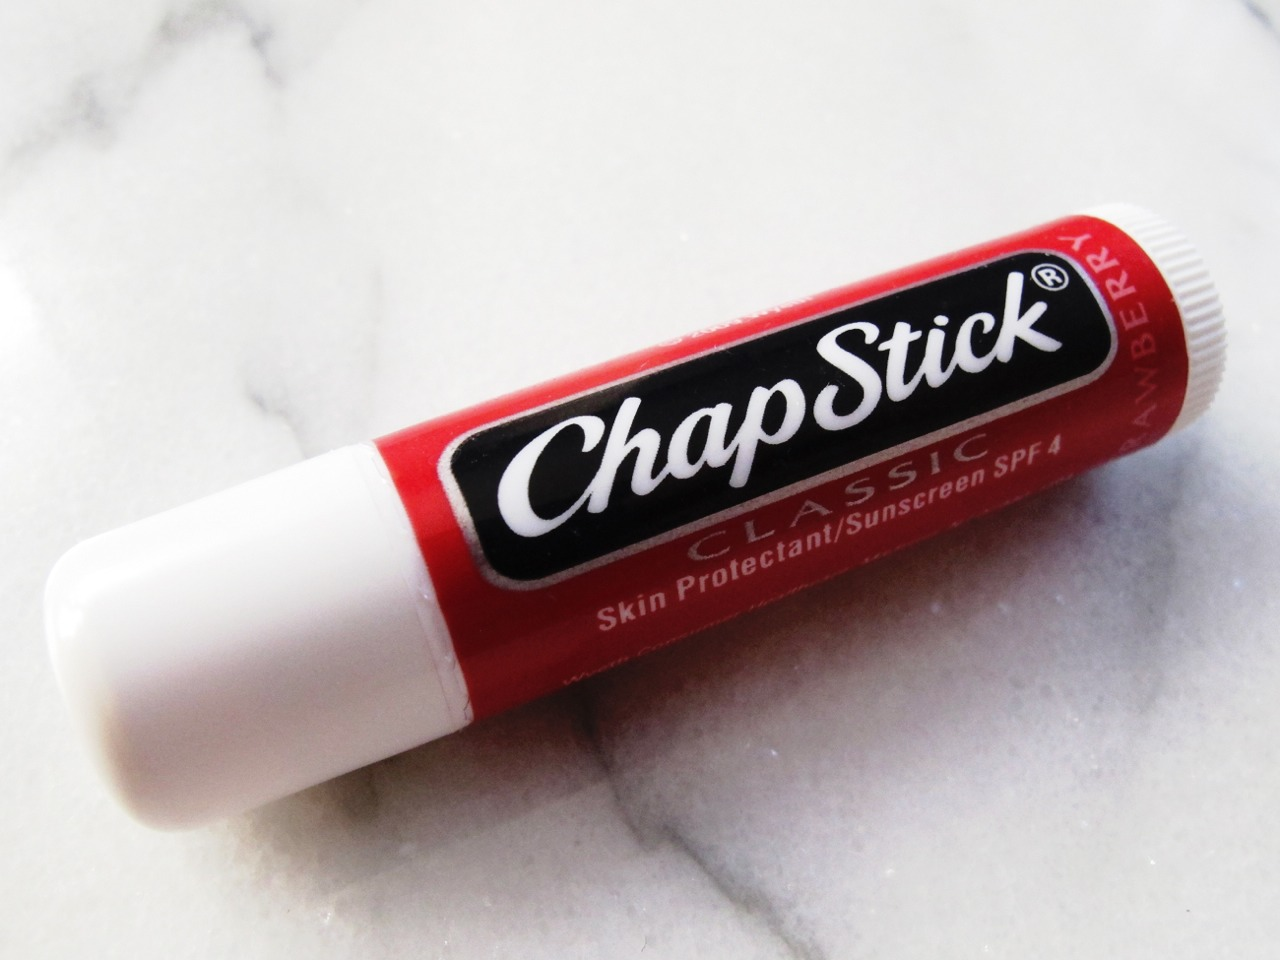 Take an empty Chapstick container